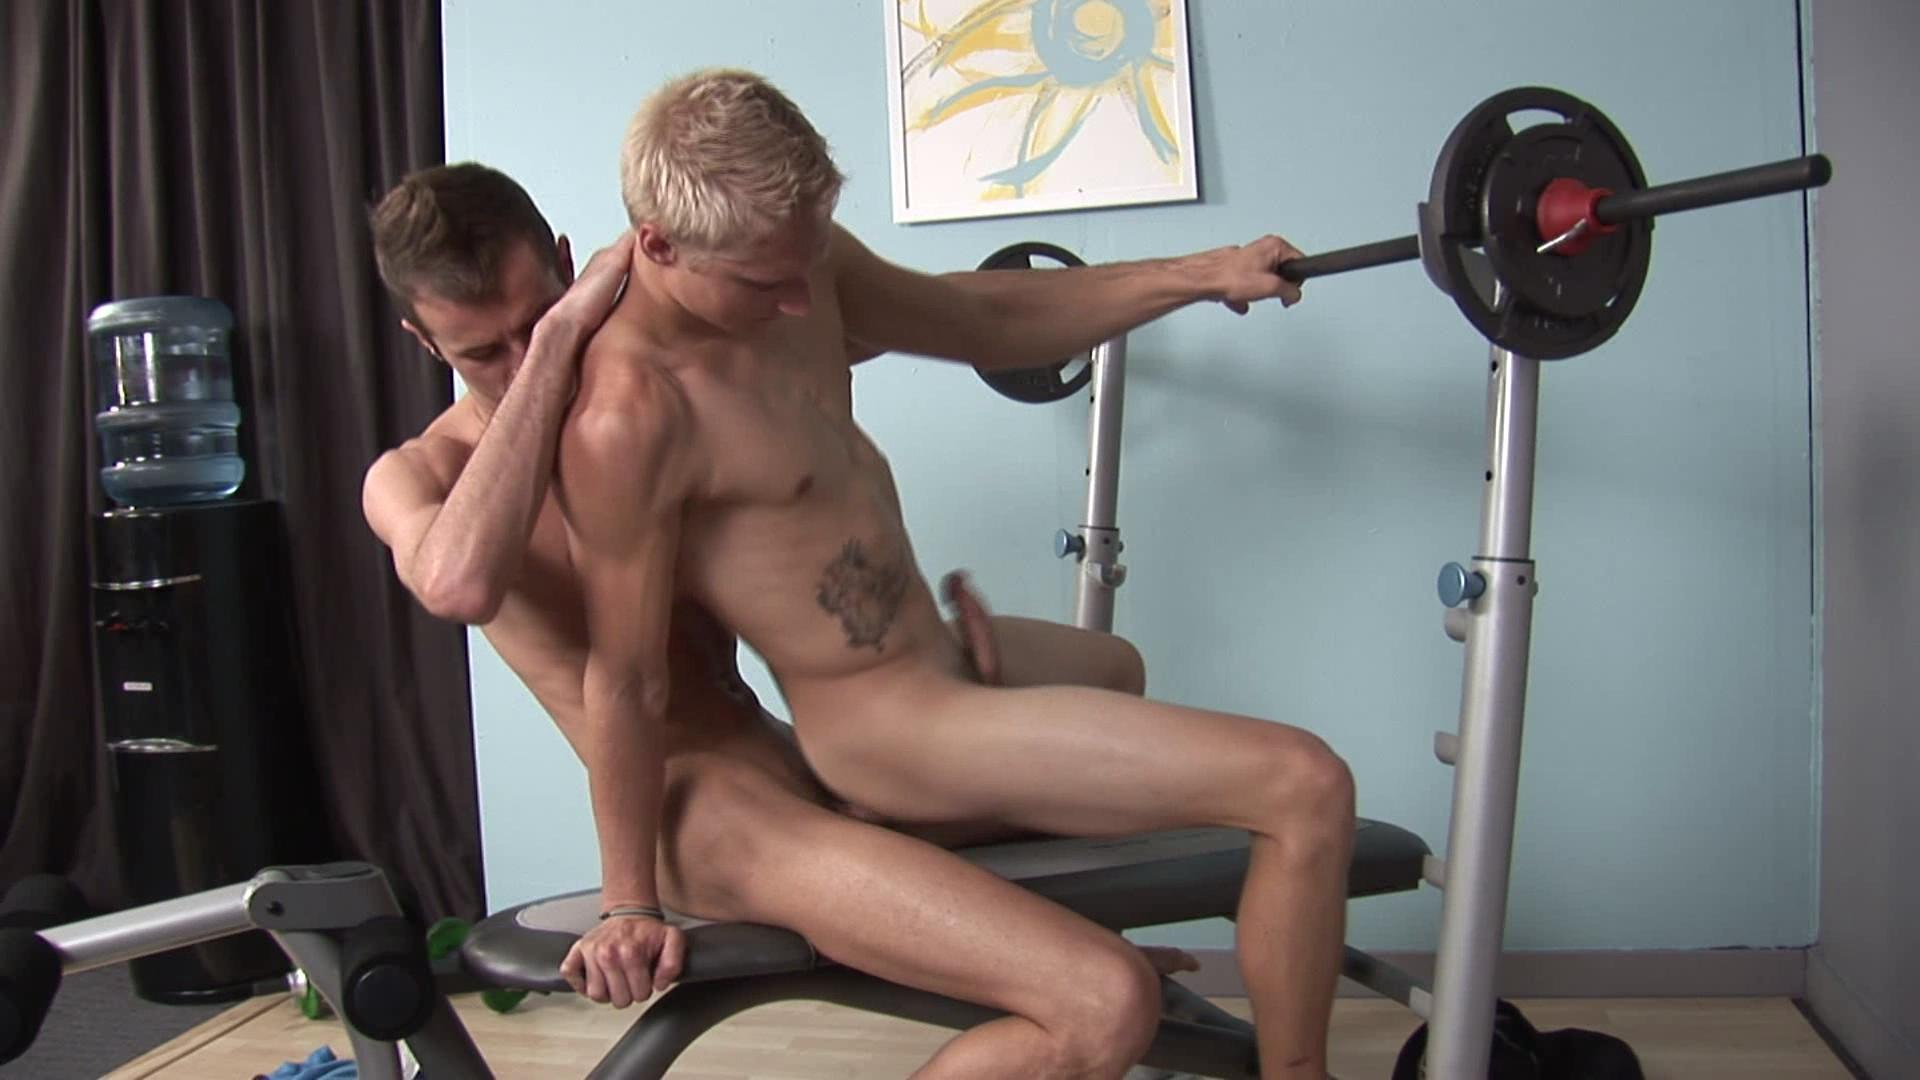 gay sexploitation films jpg 1080x810